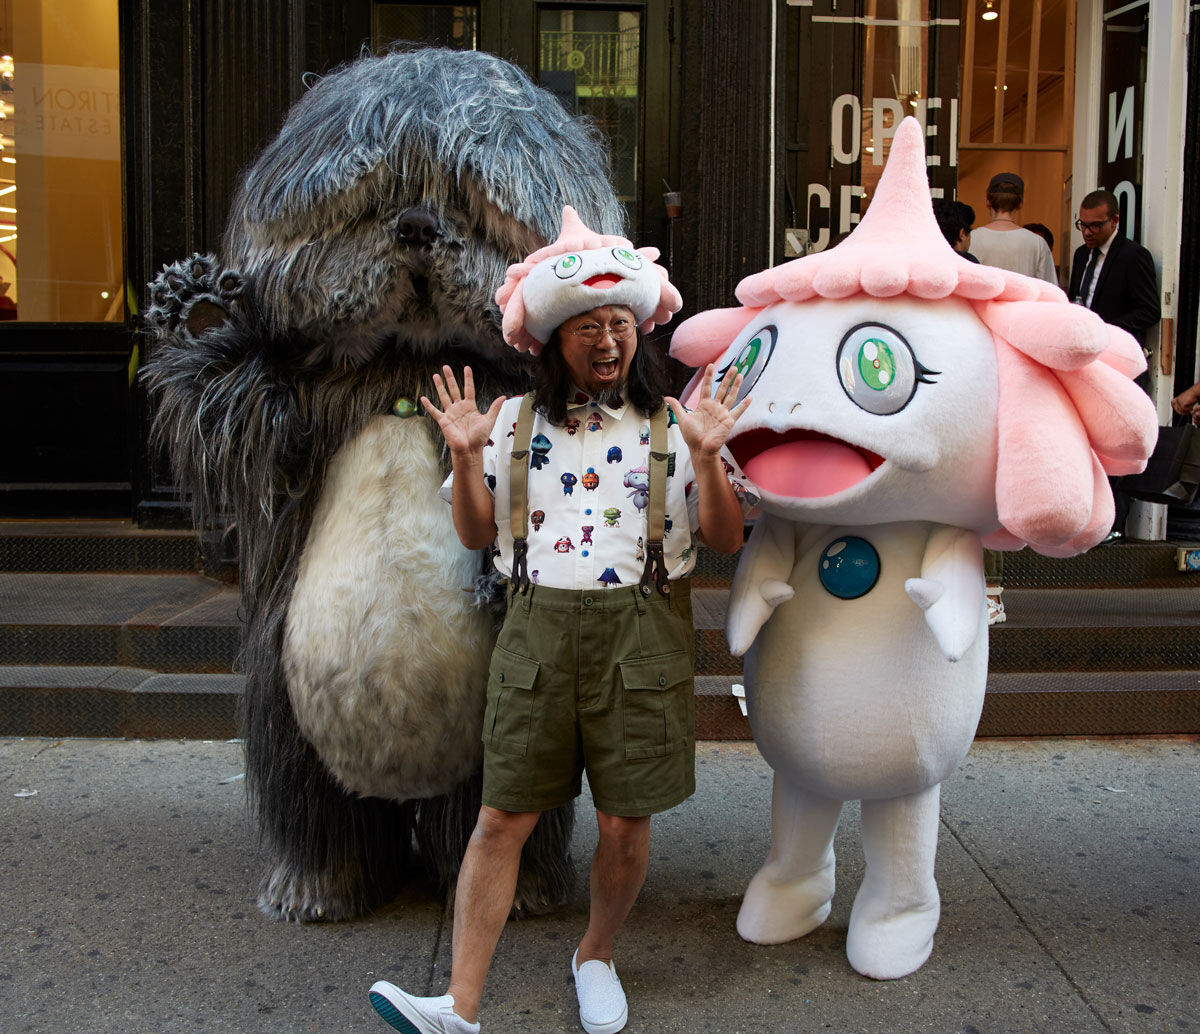 Takashi Murakami with charcters from his film Jellyfish Eyes at the IFC Center, New York, 2015. Courtesy of Janus Films and Gagosian.